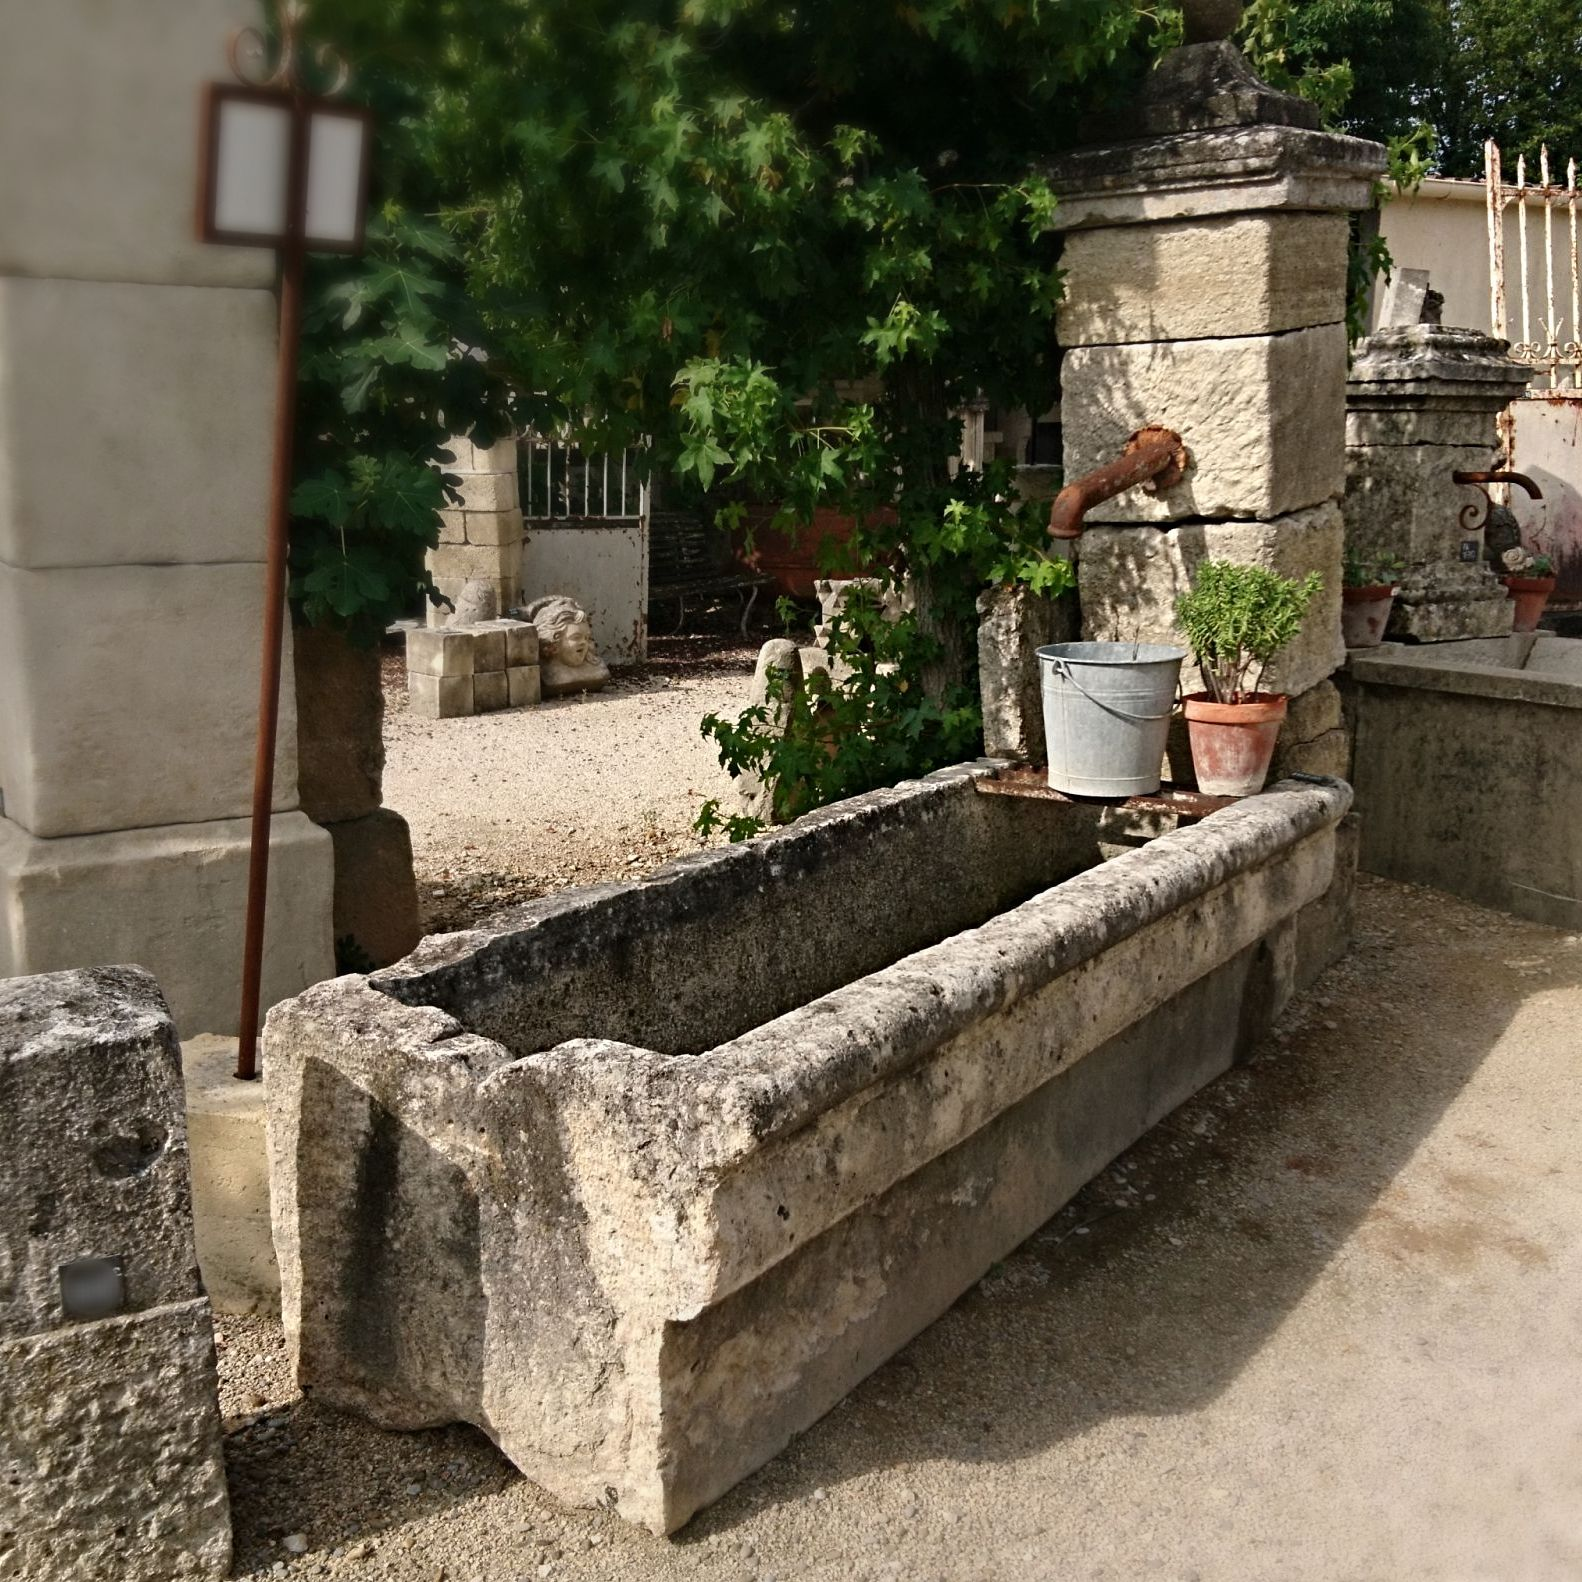 Large fountain for outdoors use | Outdoor fountain with massive old trough.